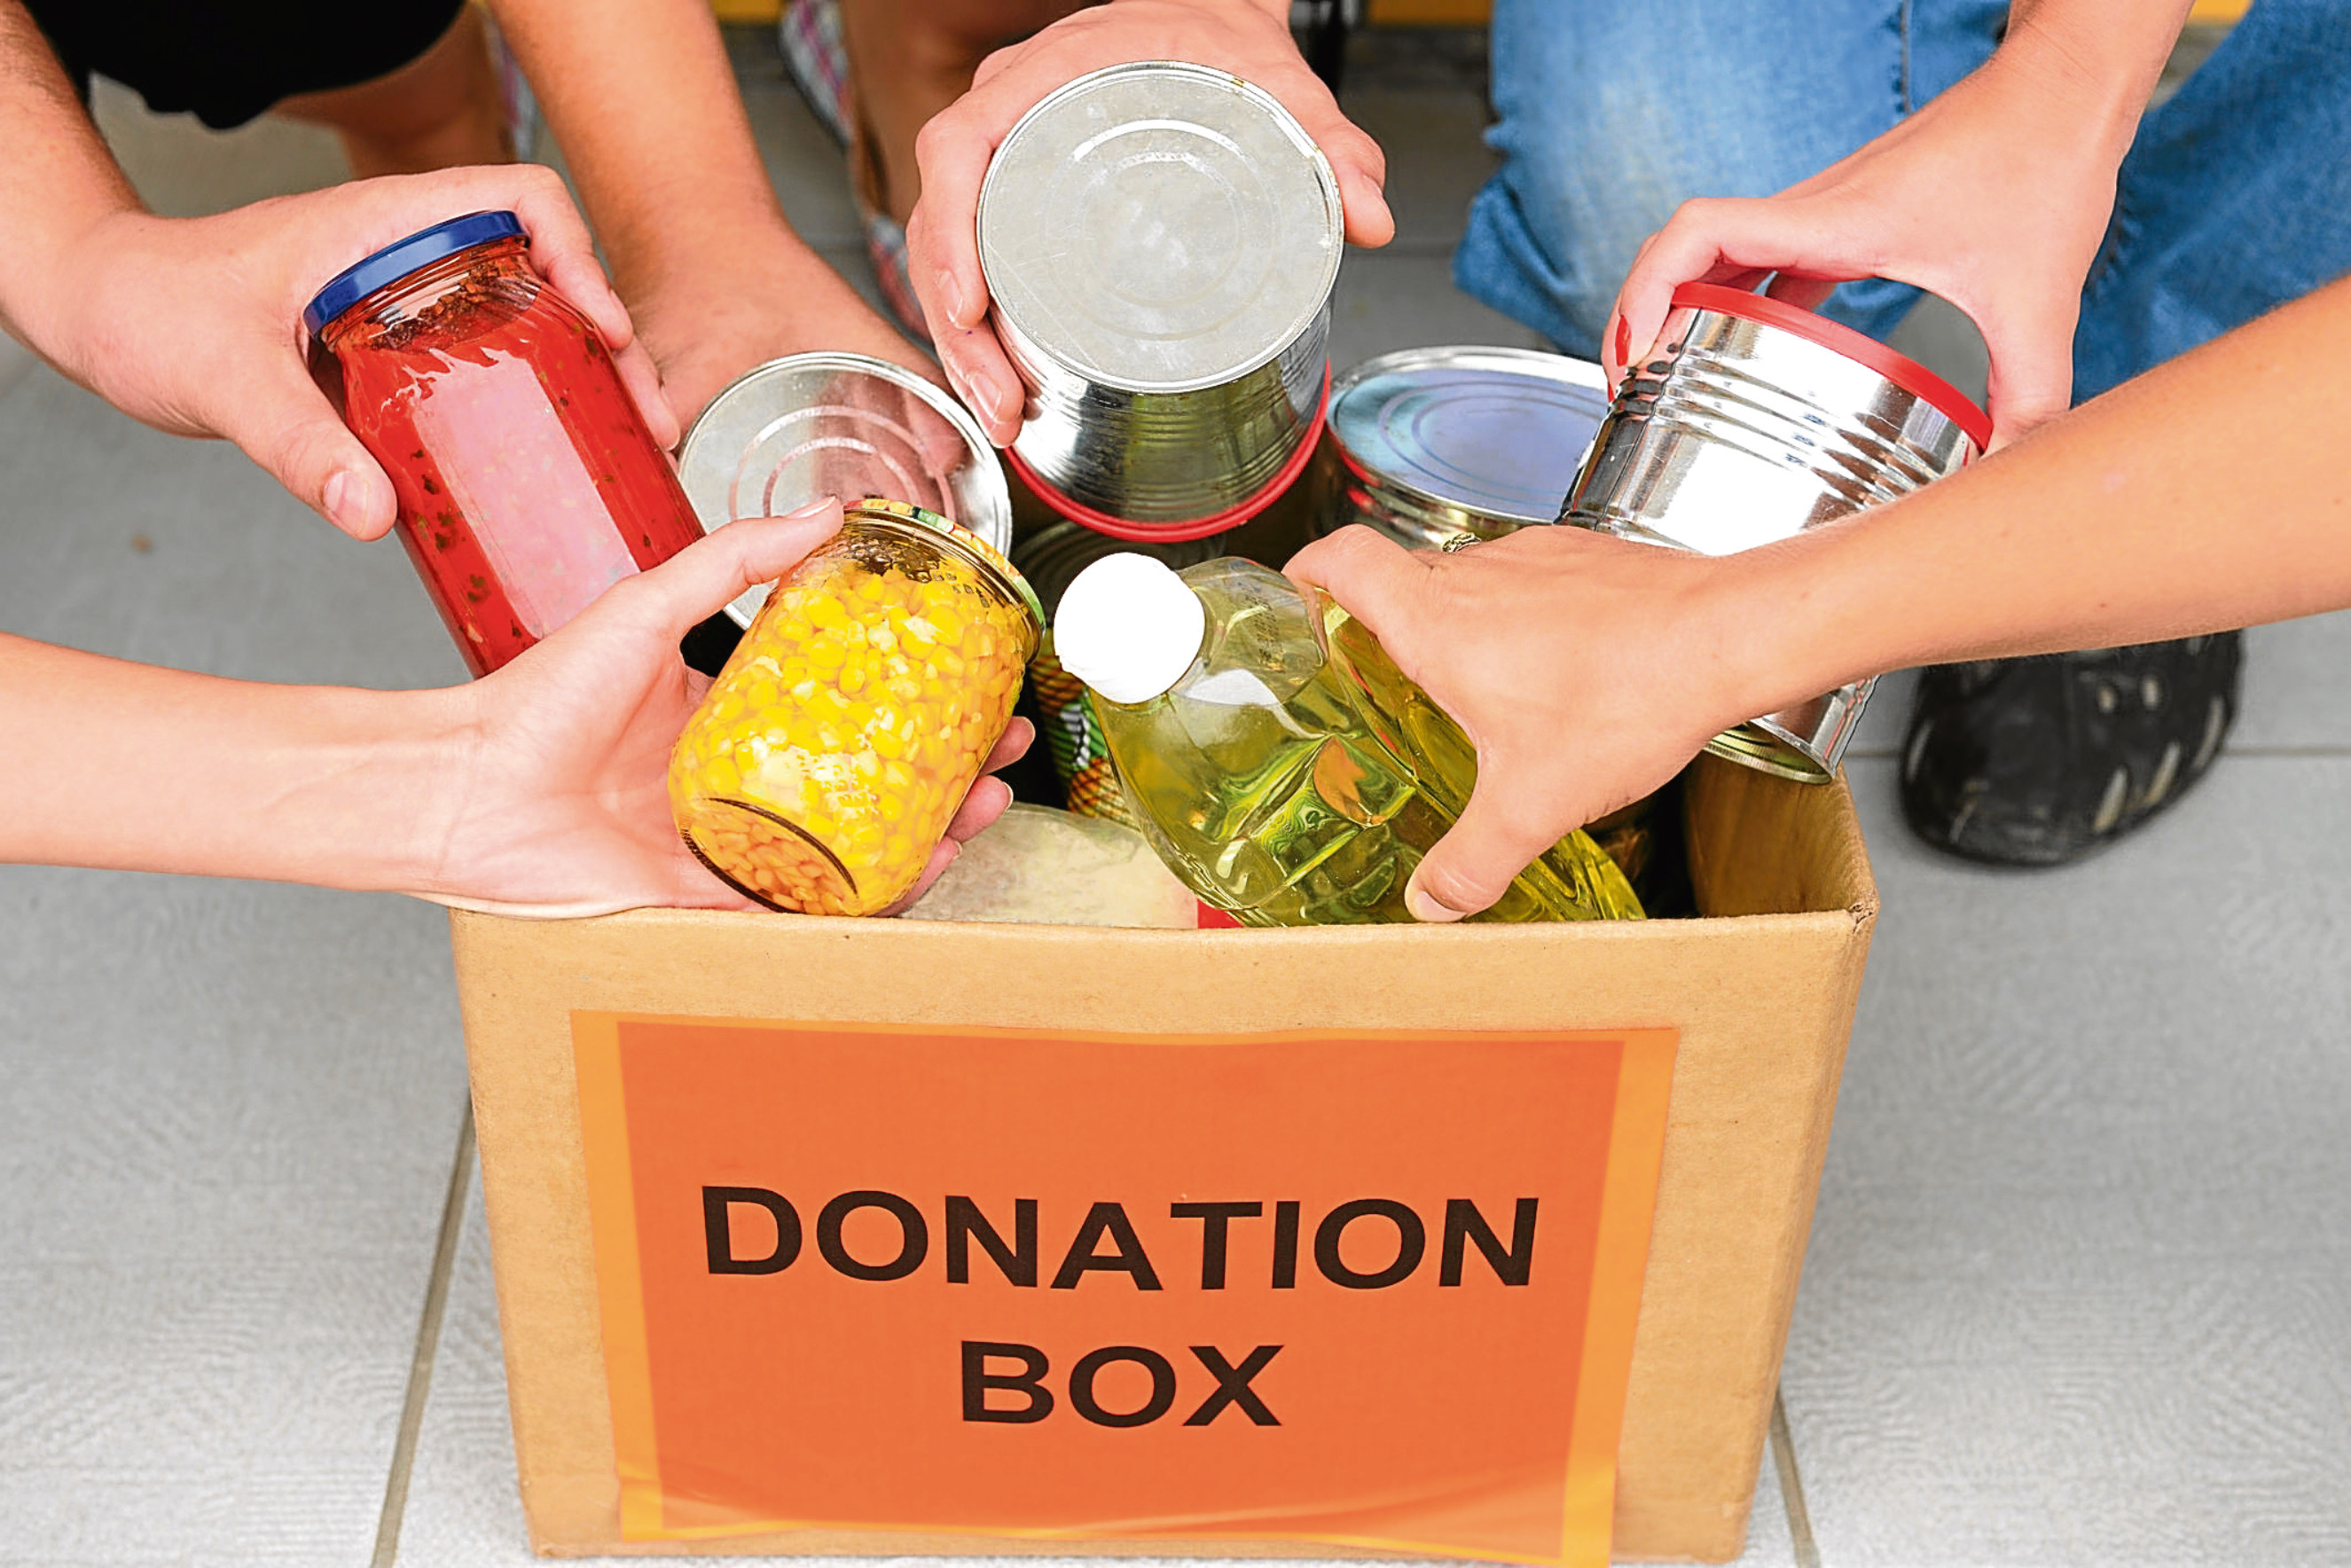 A food donation box